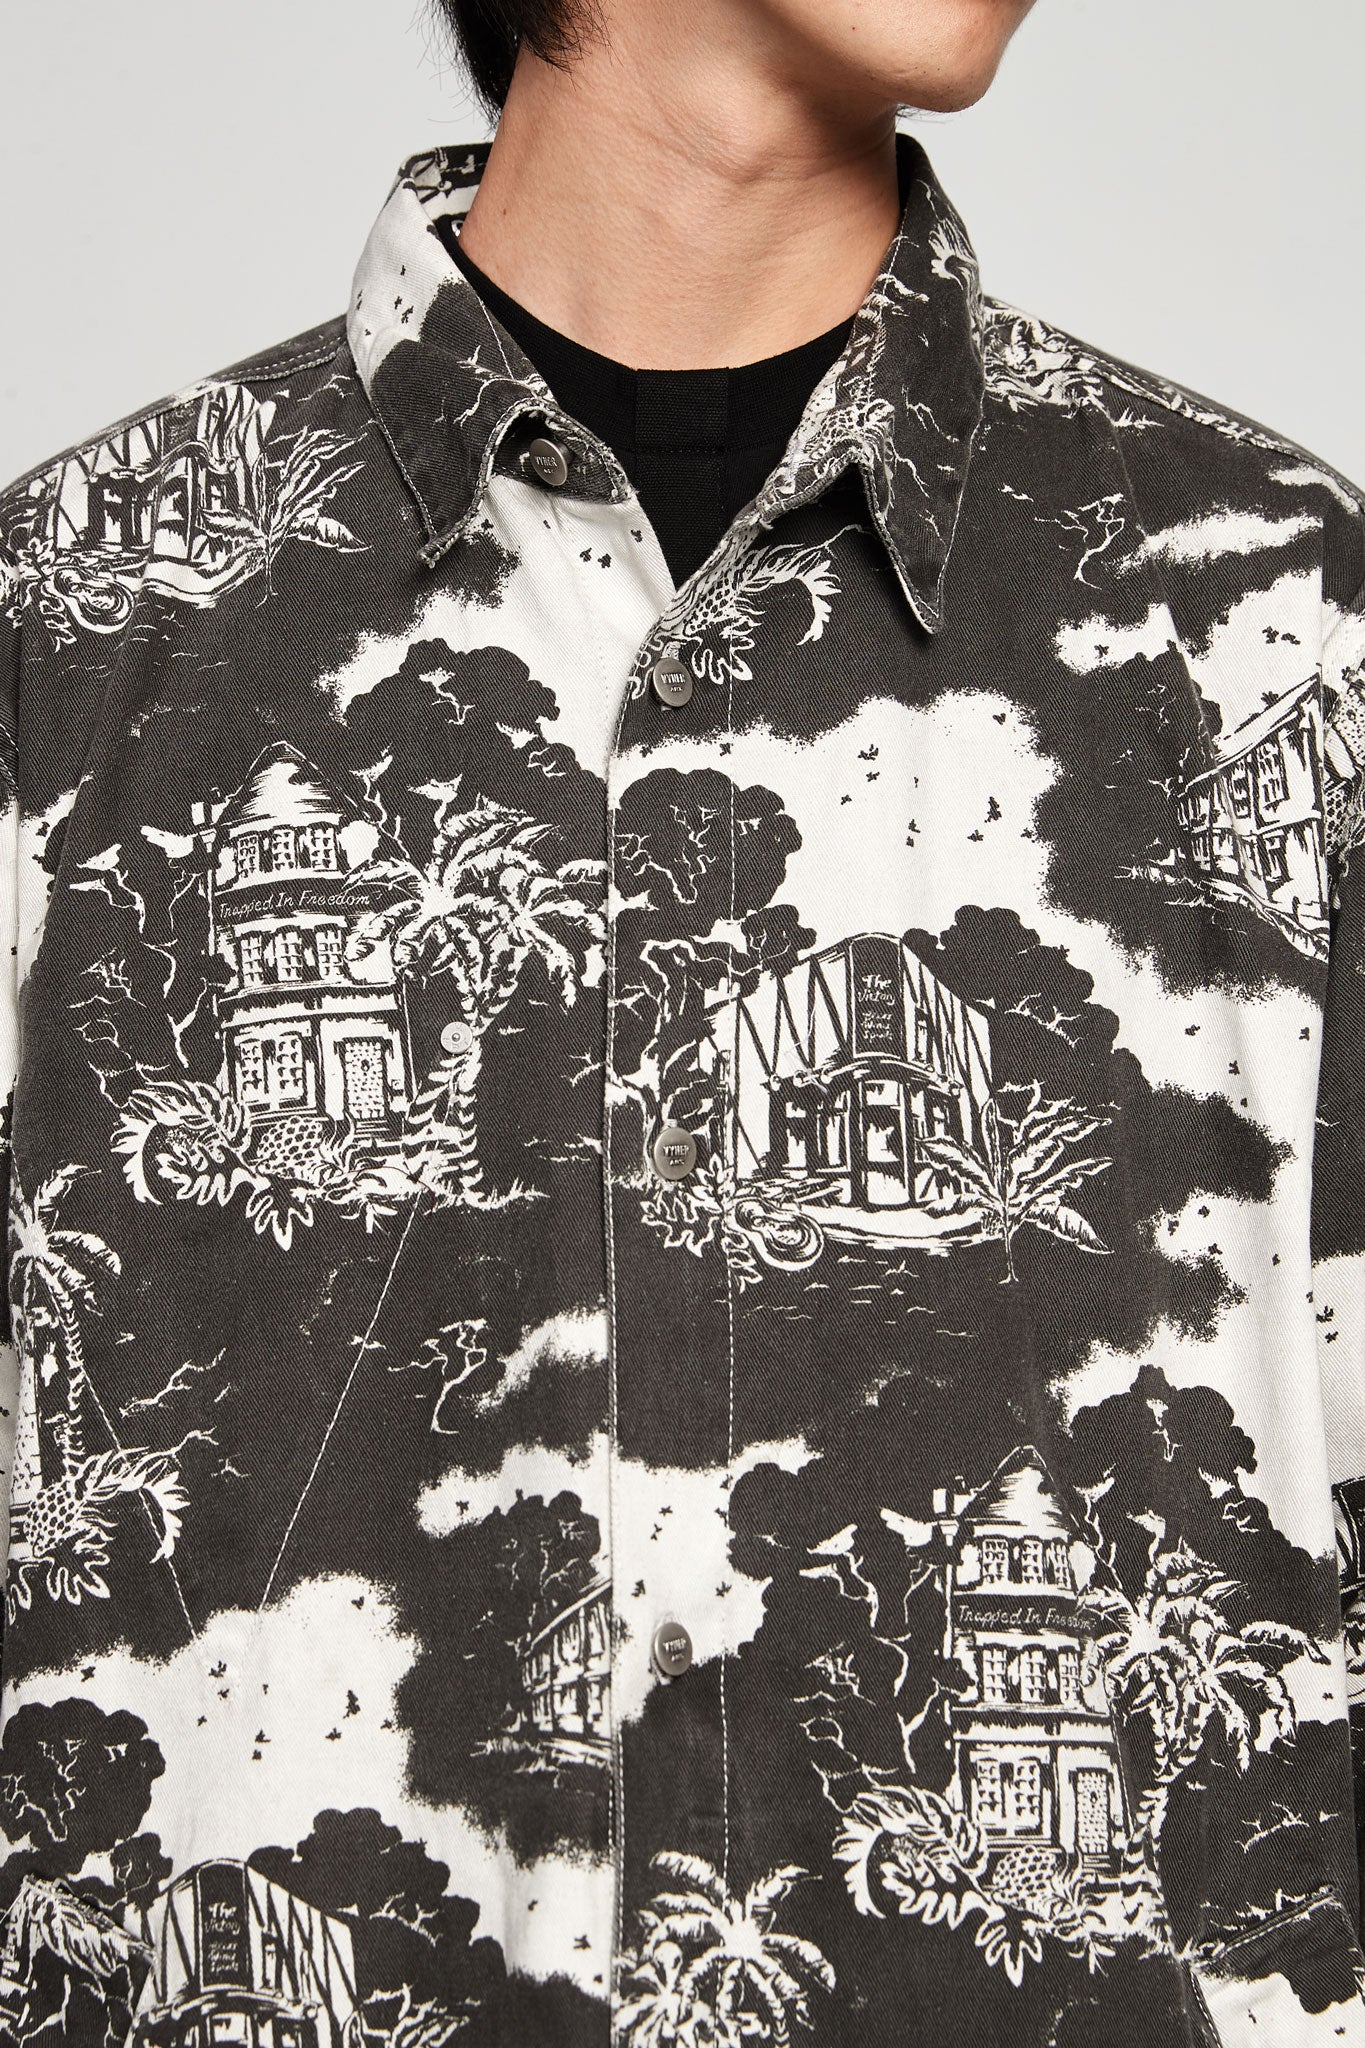 Hawaiian Print Overshirt Twill Black/white